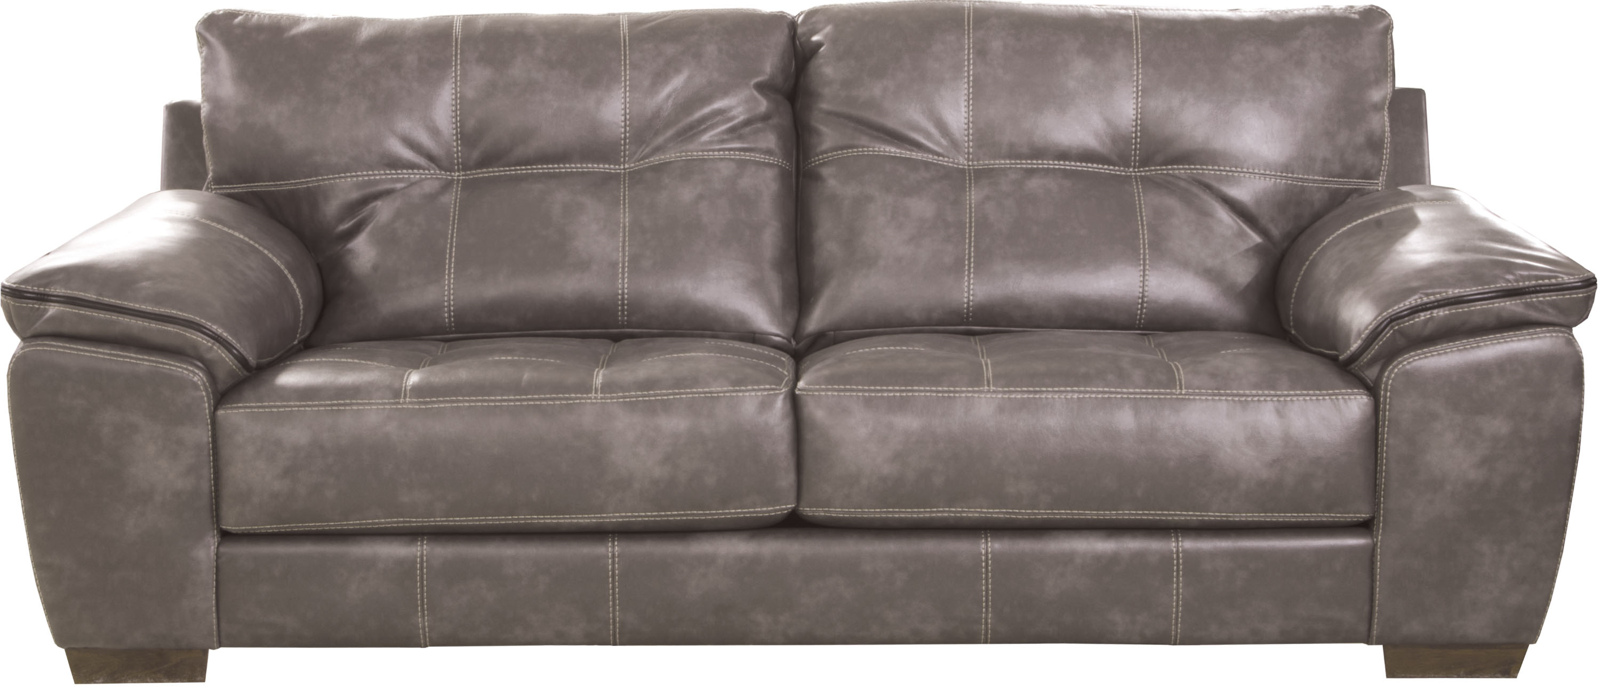 Hudson Sofa Collection Reviews Jackson Furniture Hudson Sofa In Steel 4396 03 Code Univ20 For 20 Off